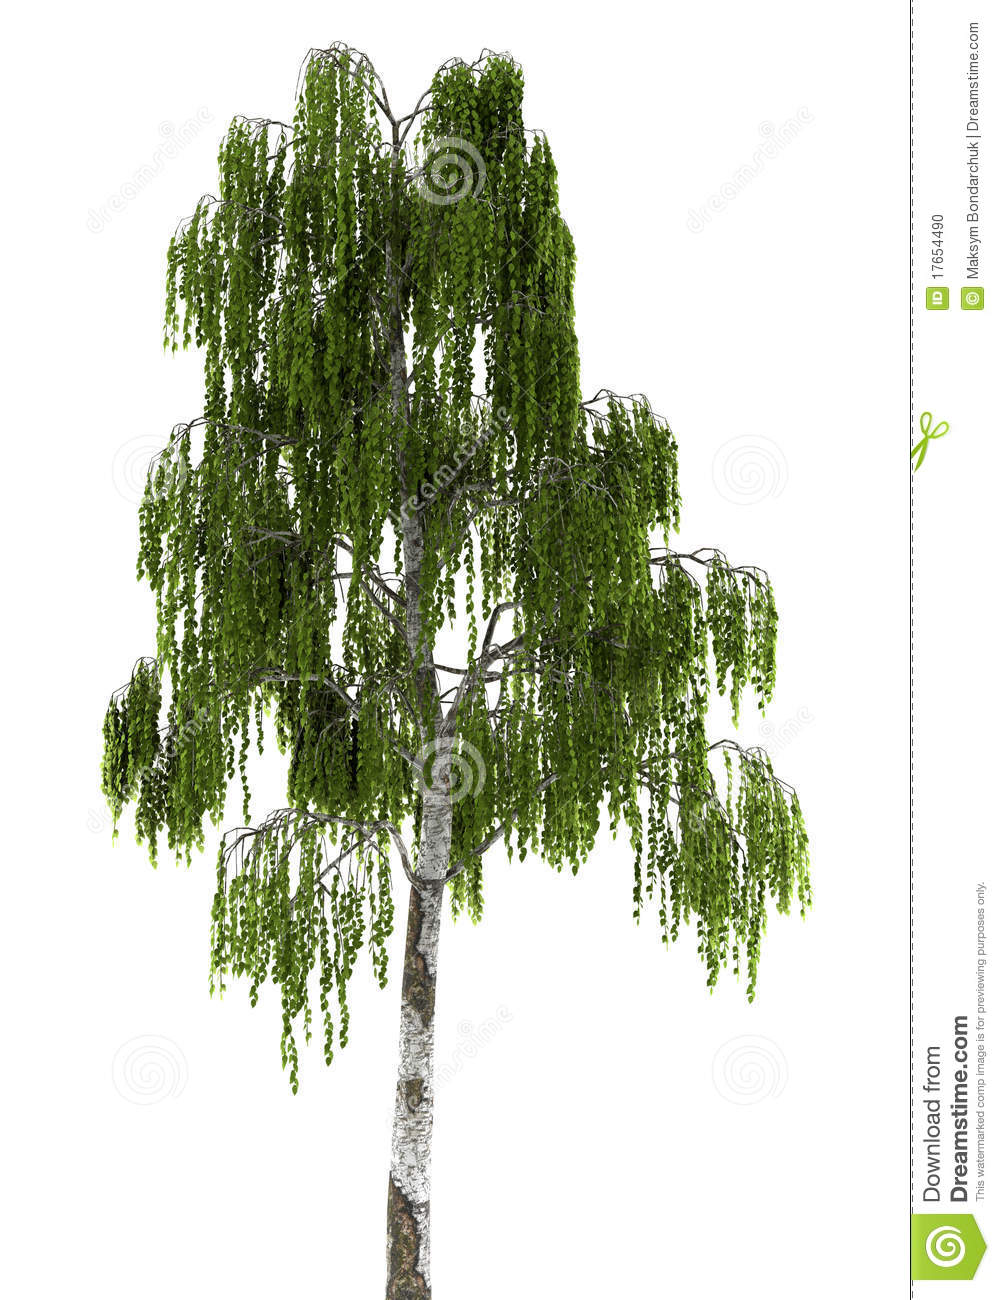 Birch tree isolated on white background